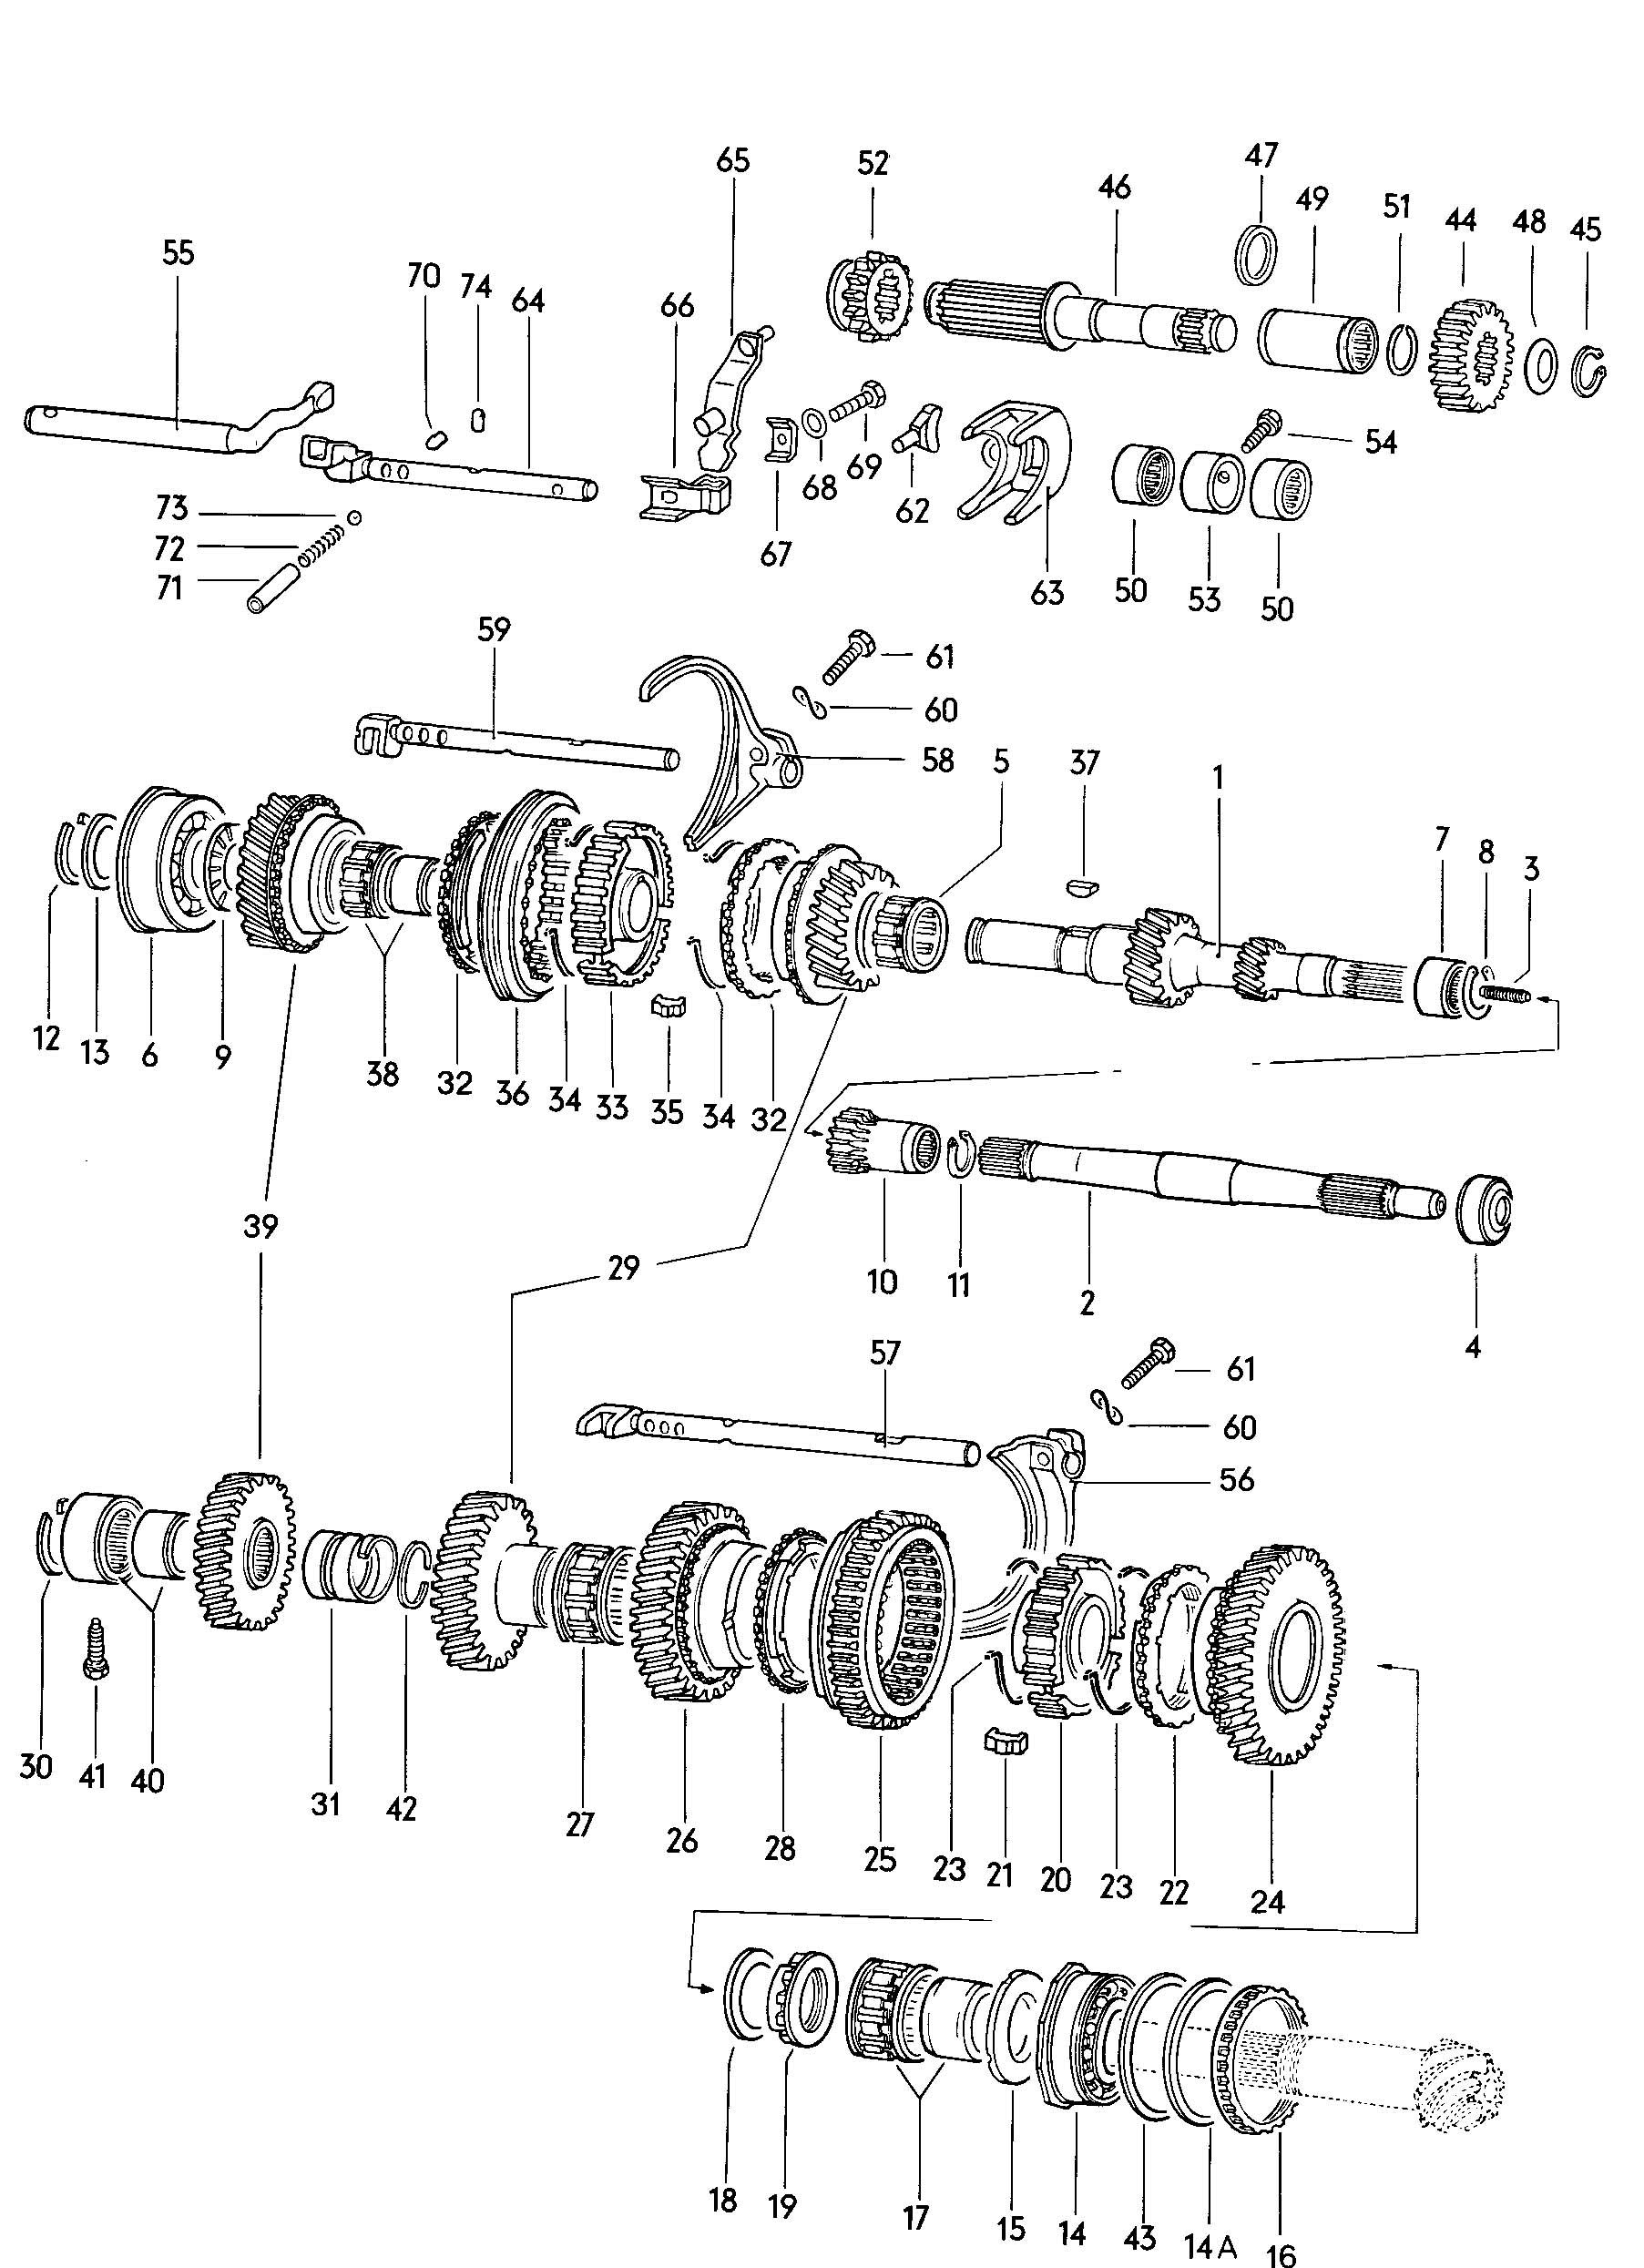 Gears And Shafts Manual Transmission Volkswagen Vw